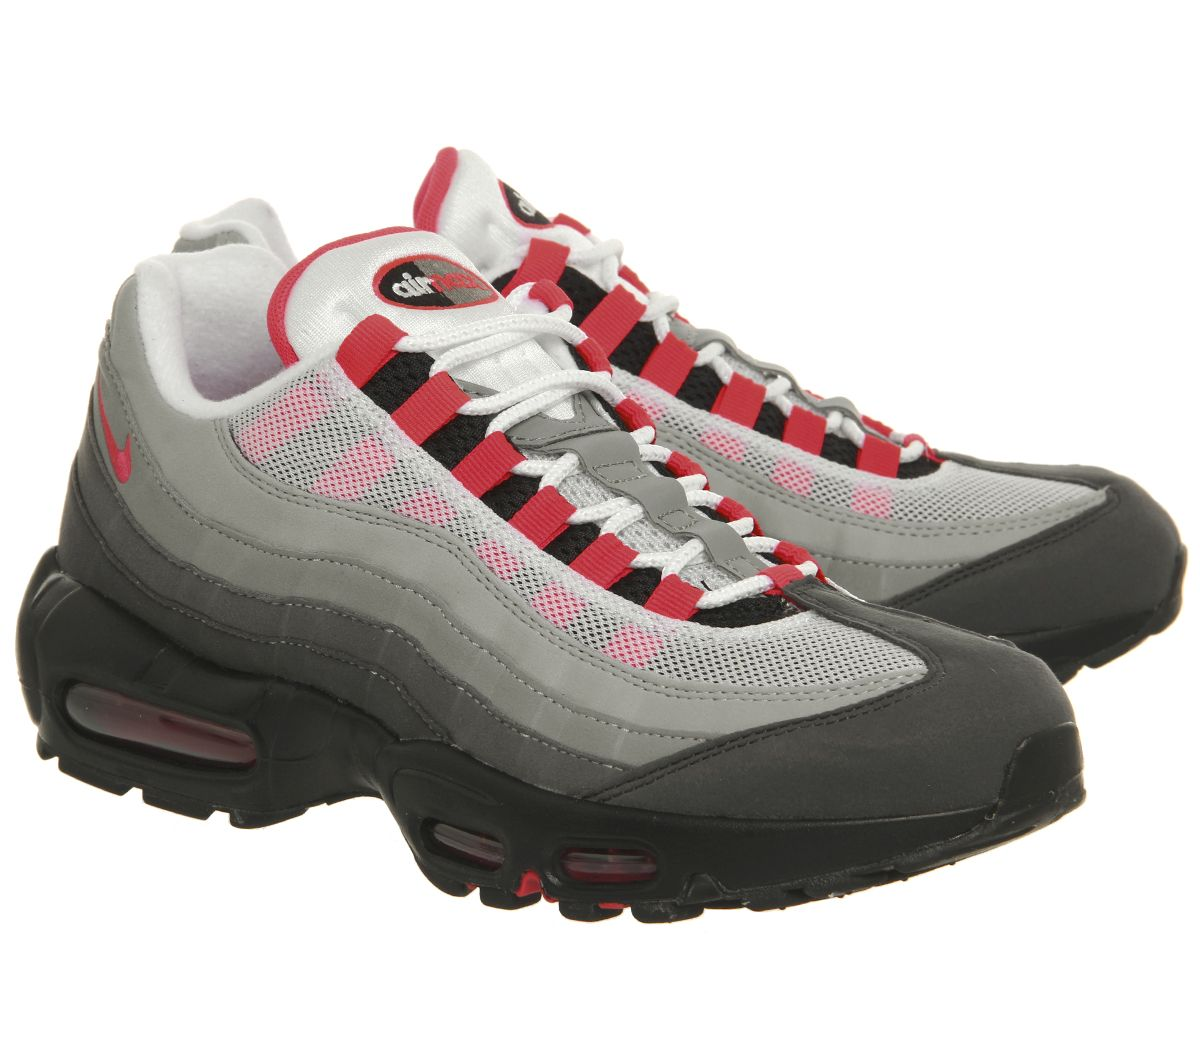 14223c70ae Nike Air Max 95 Trainers White Solar Red Granite - Hers trainers